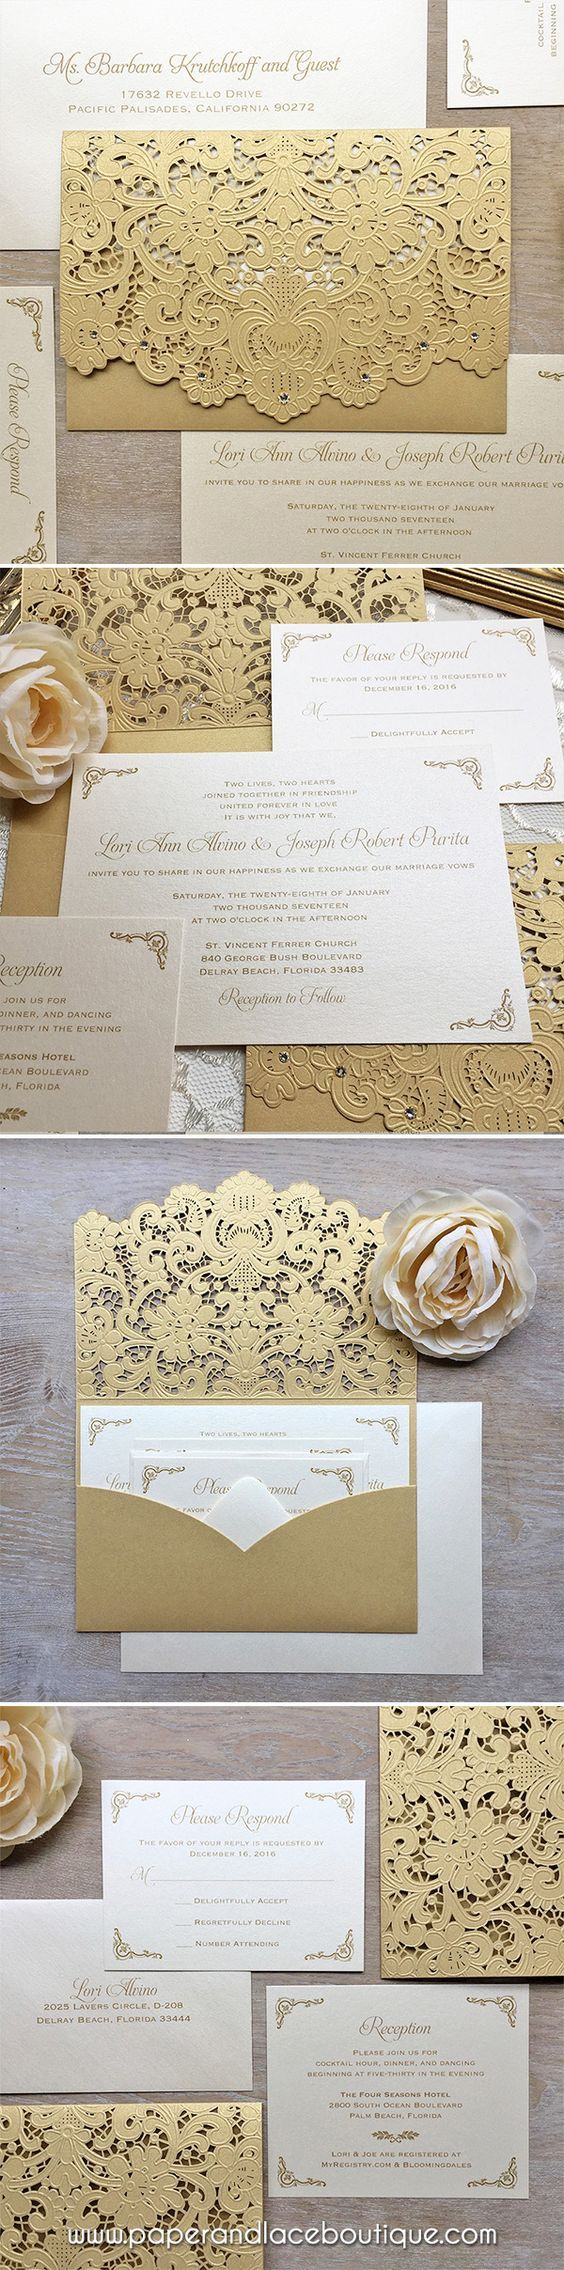 Wedding Invites HandPicked Wedding invitation Card